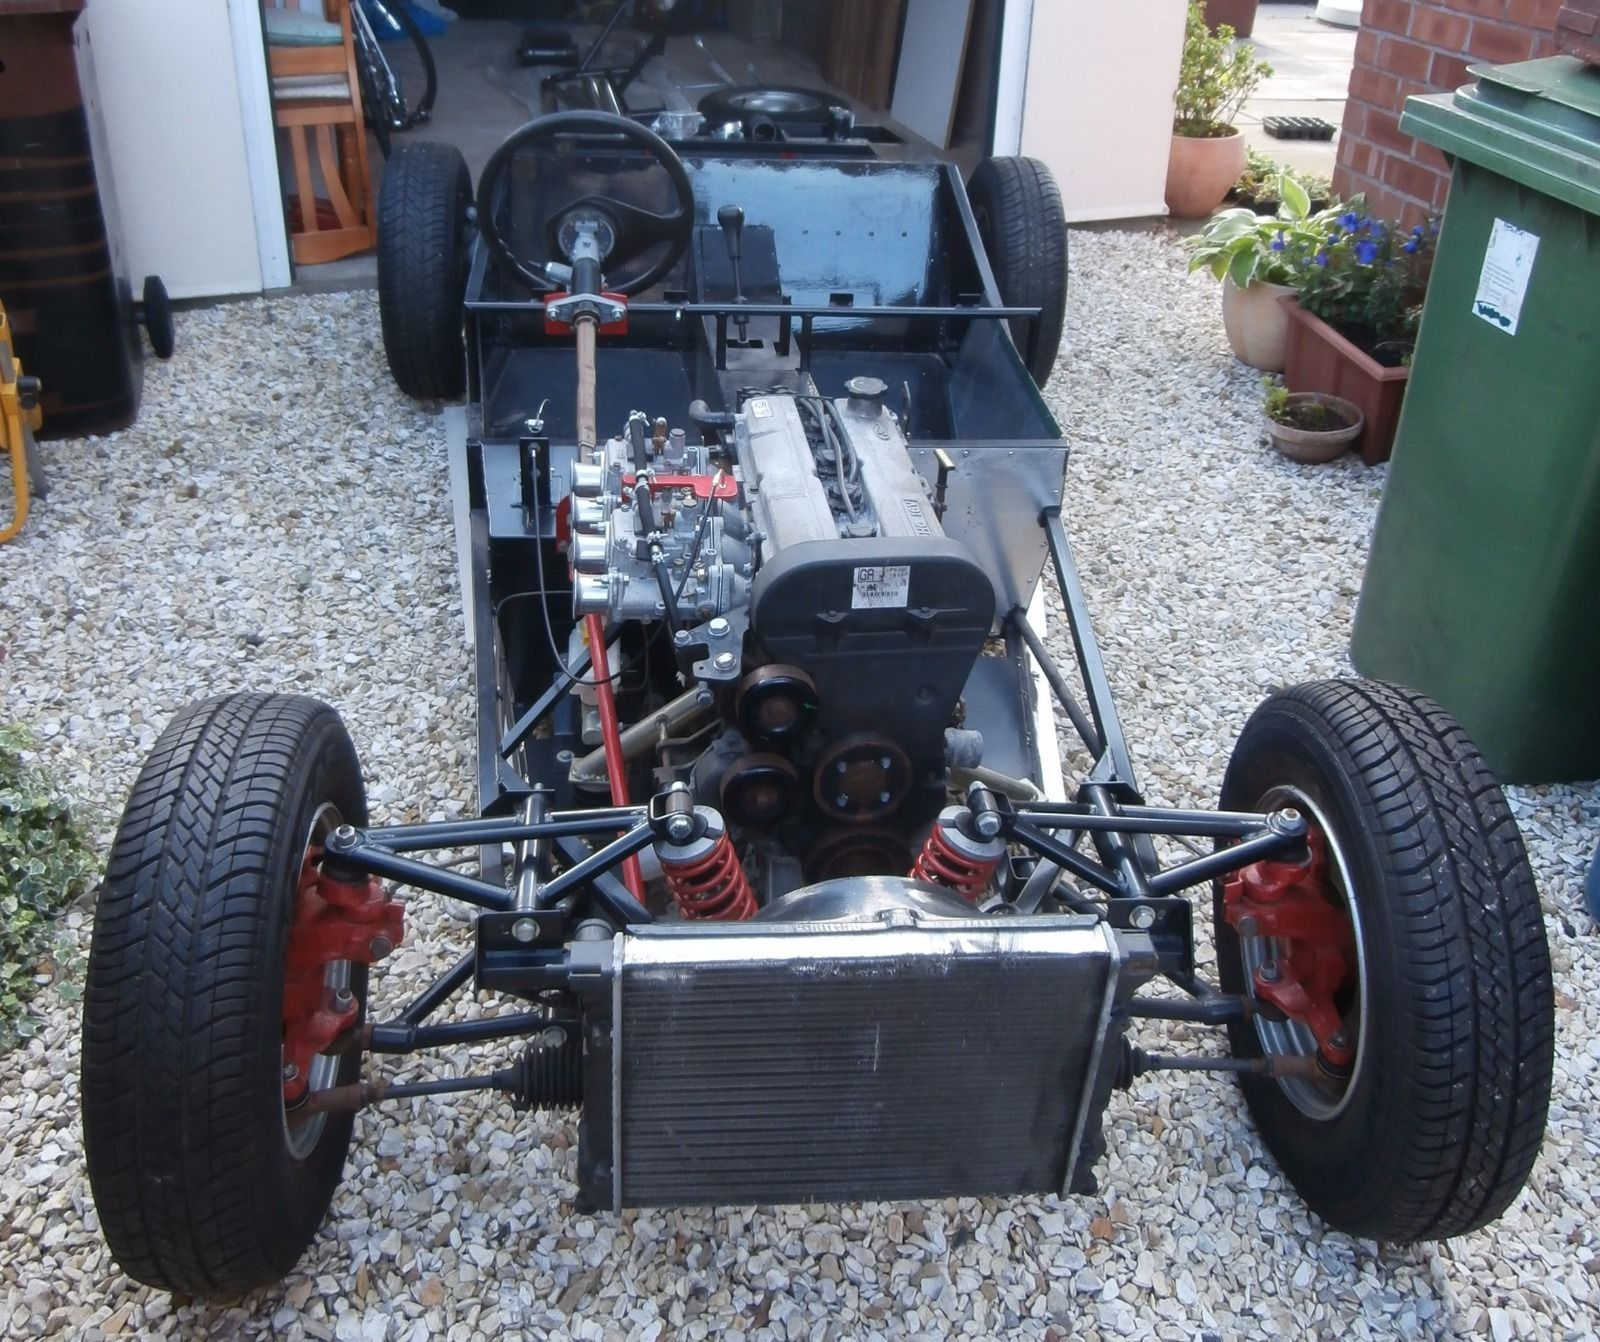 Fisher Fury Chassis - Unfinished Kit Car Project | Pinterest | Kit ...